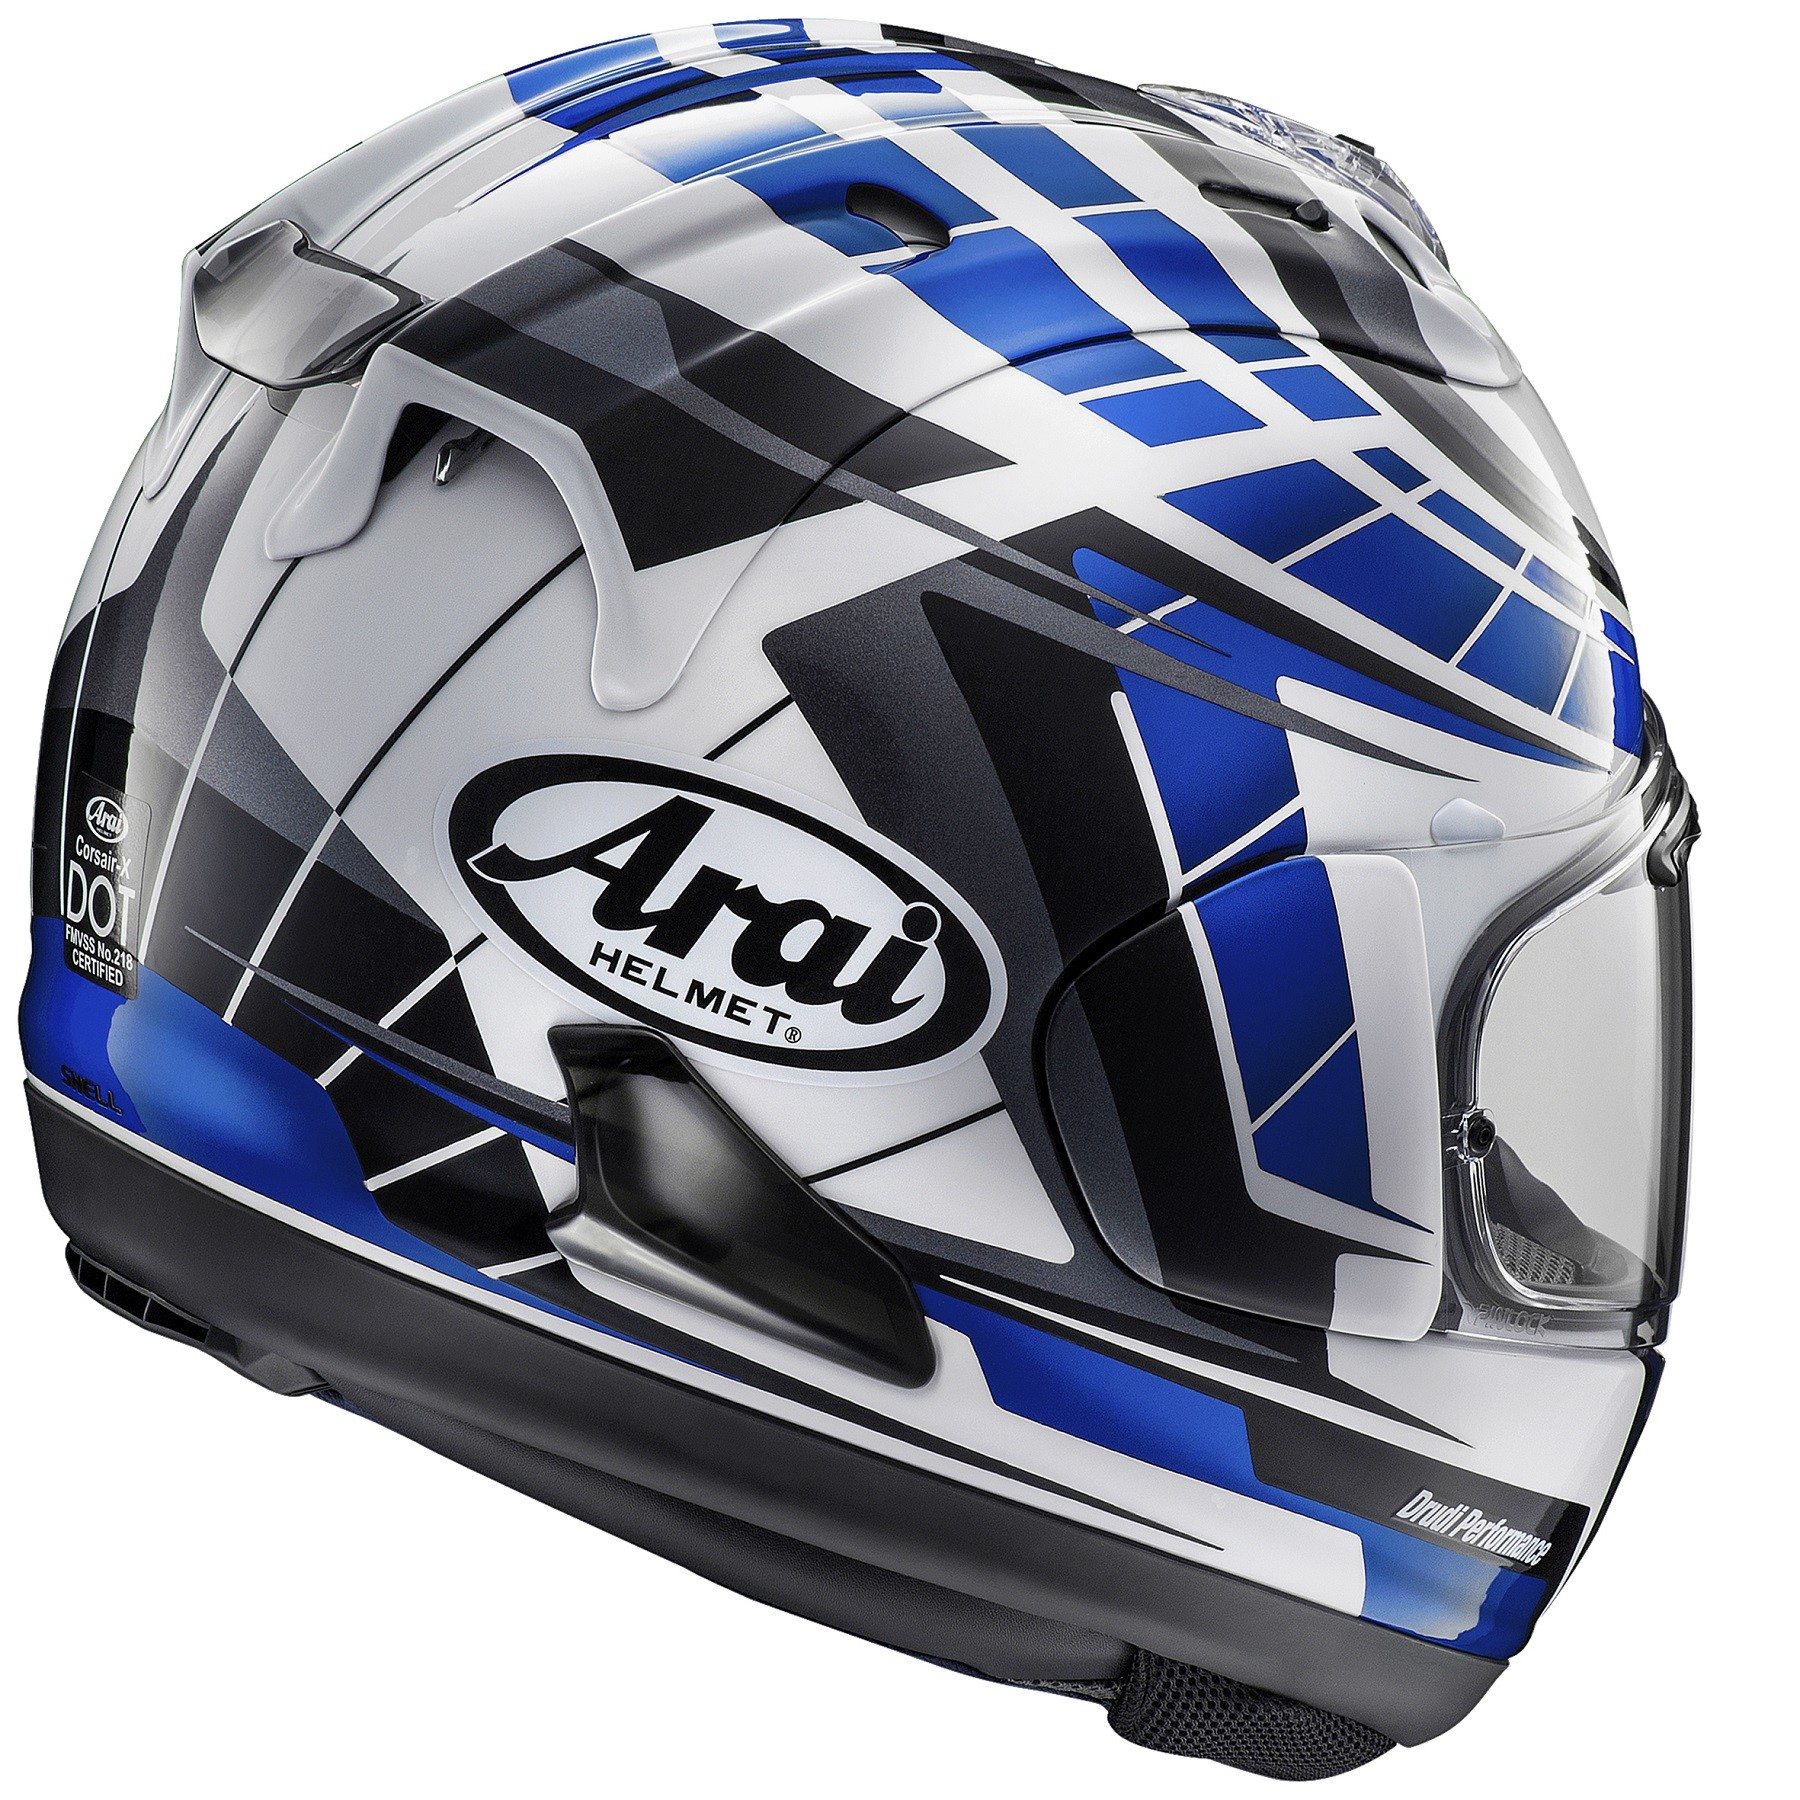 arai rx 7v planet full face motorcycle helmets. Black Bedroom Furniture Sets. Home Design Ideas